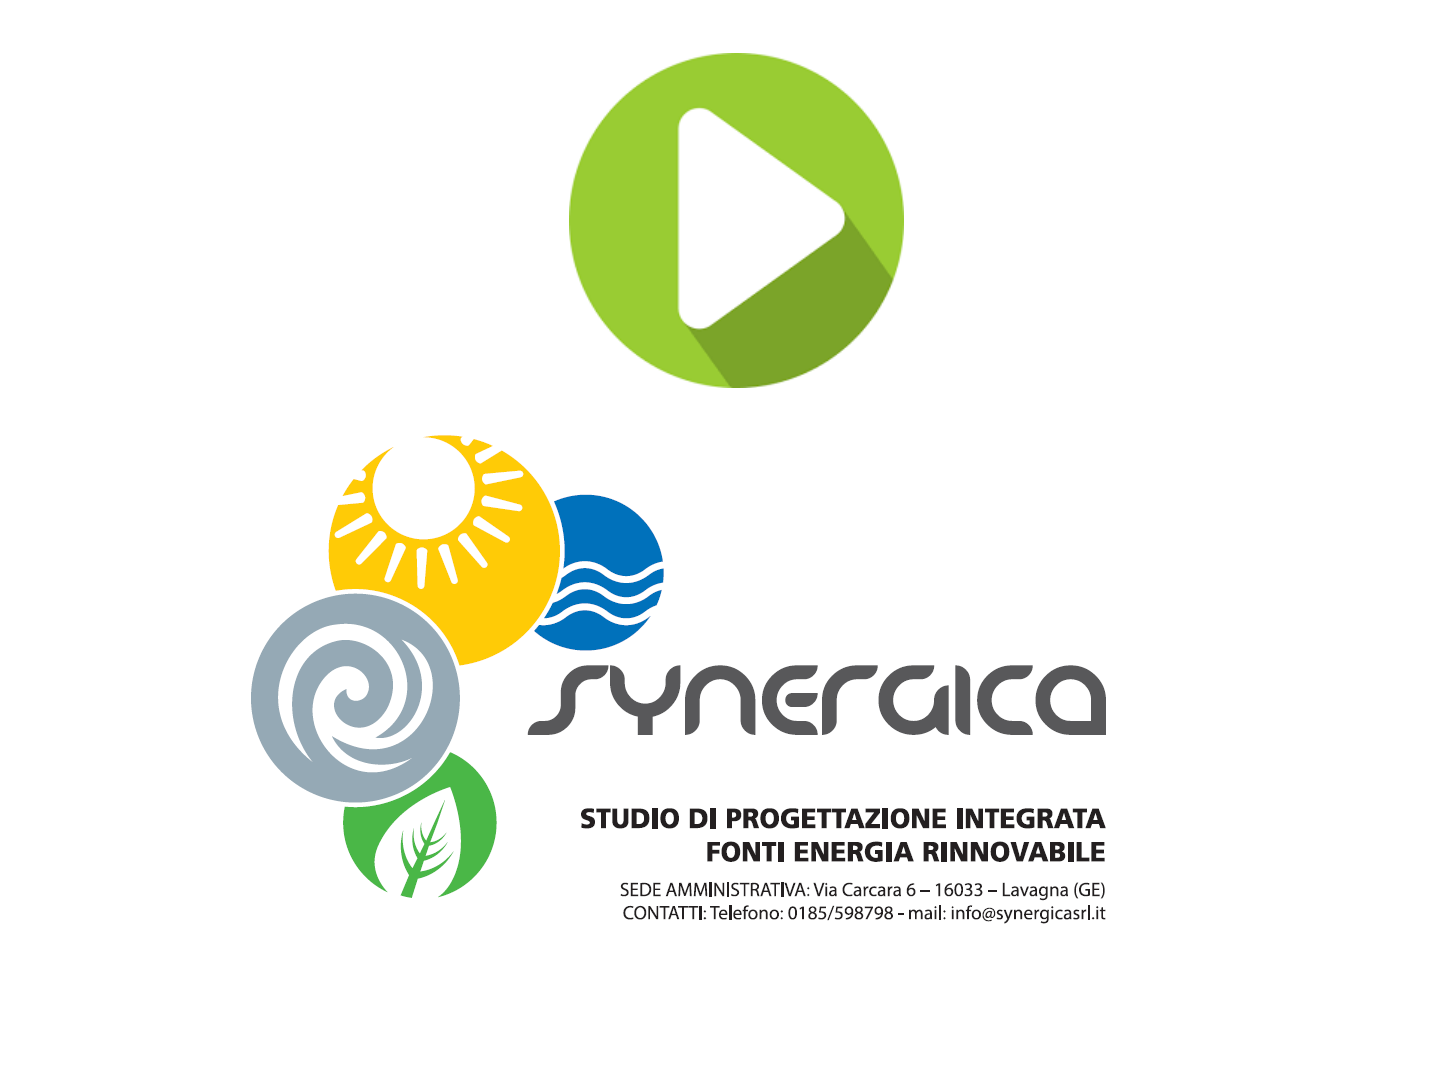 logo synergica video youtube